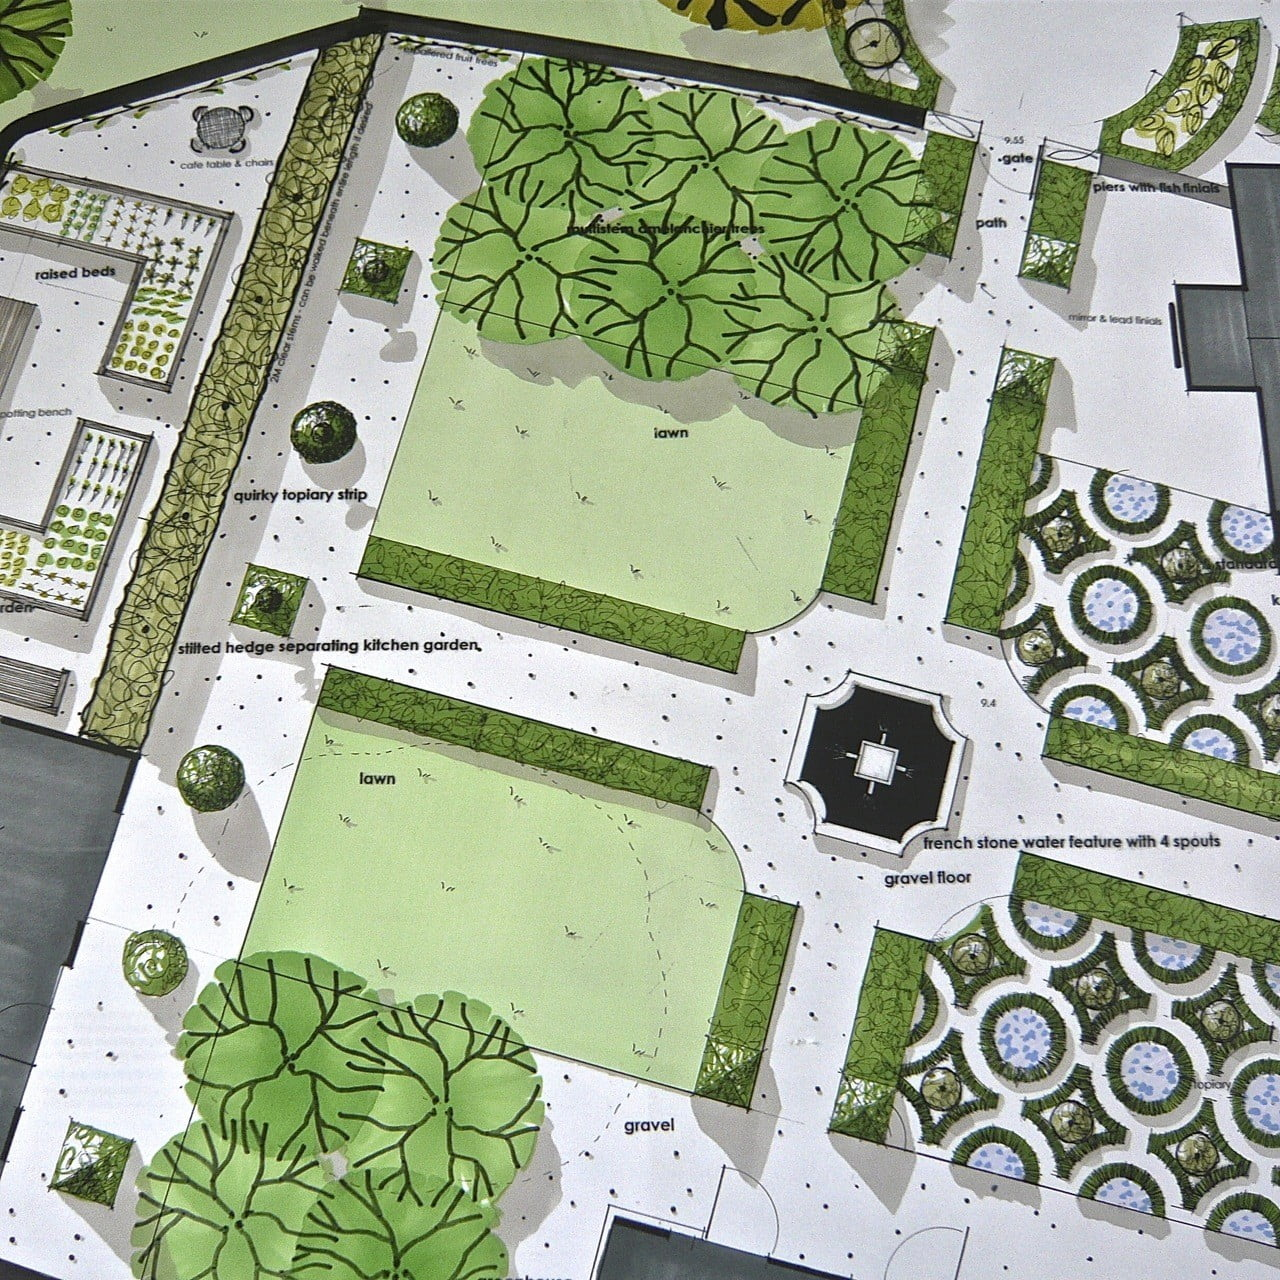 This is my plan drawing for a French style walled garden near Henley on Thames